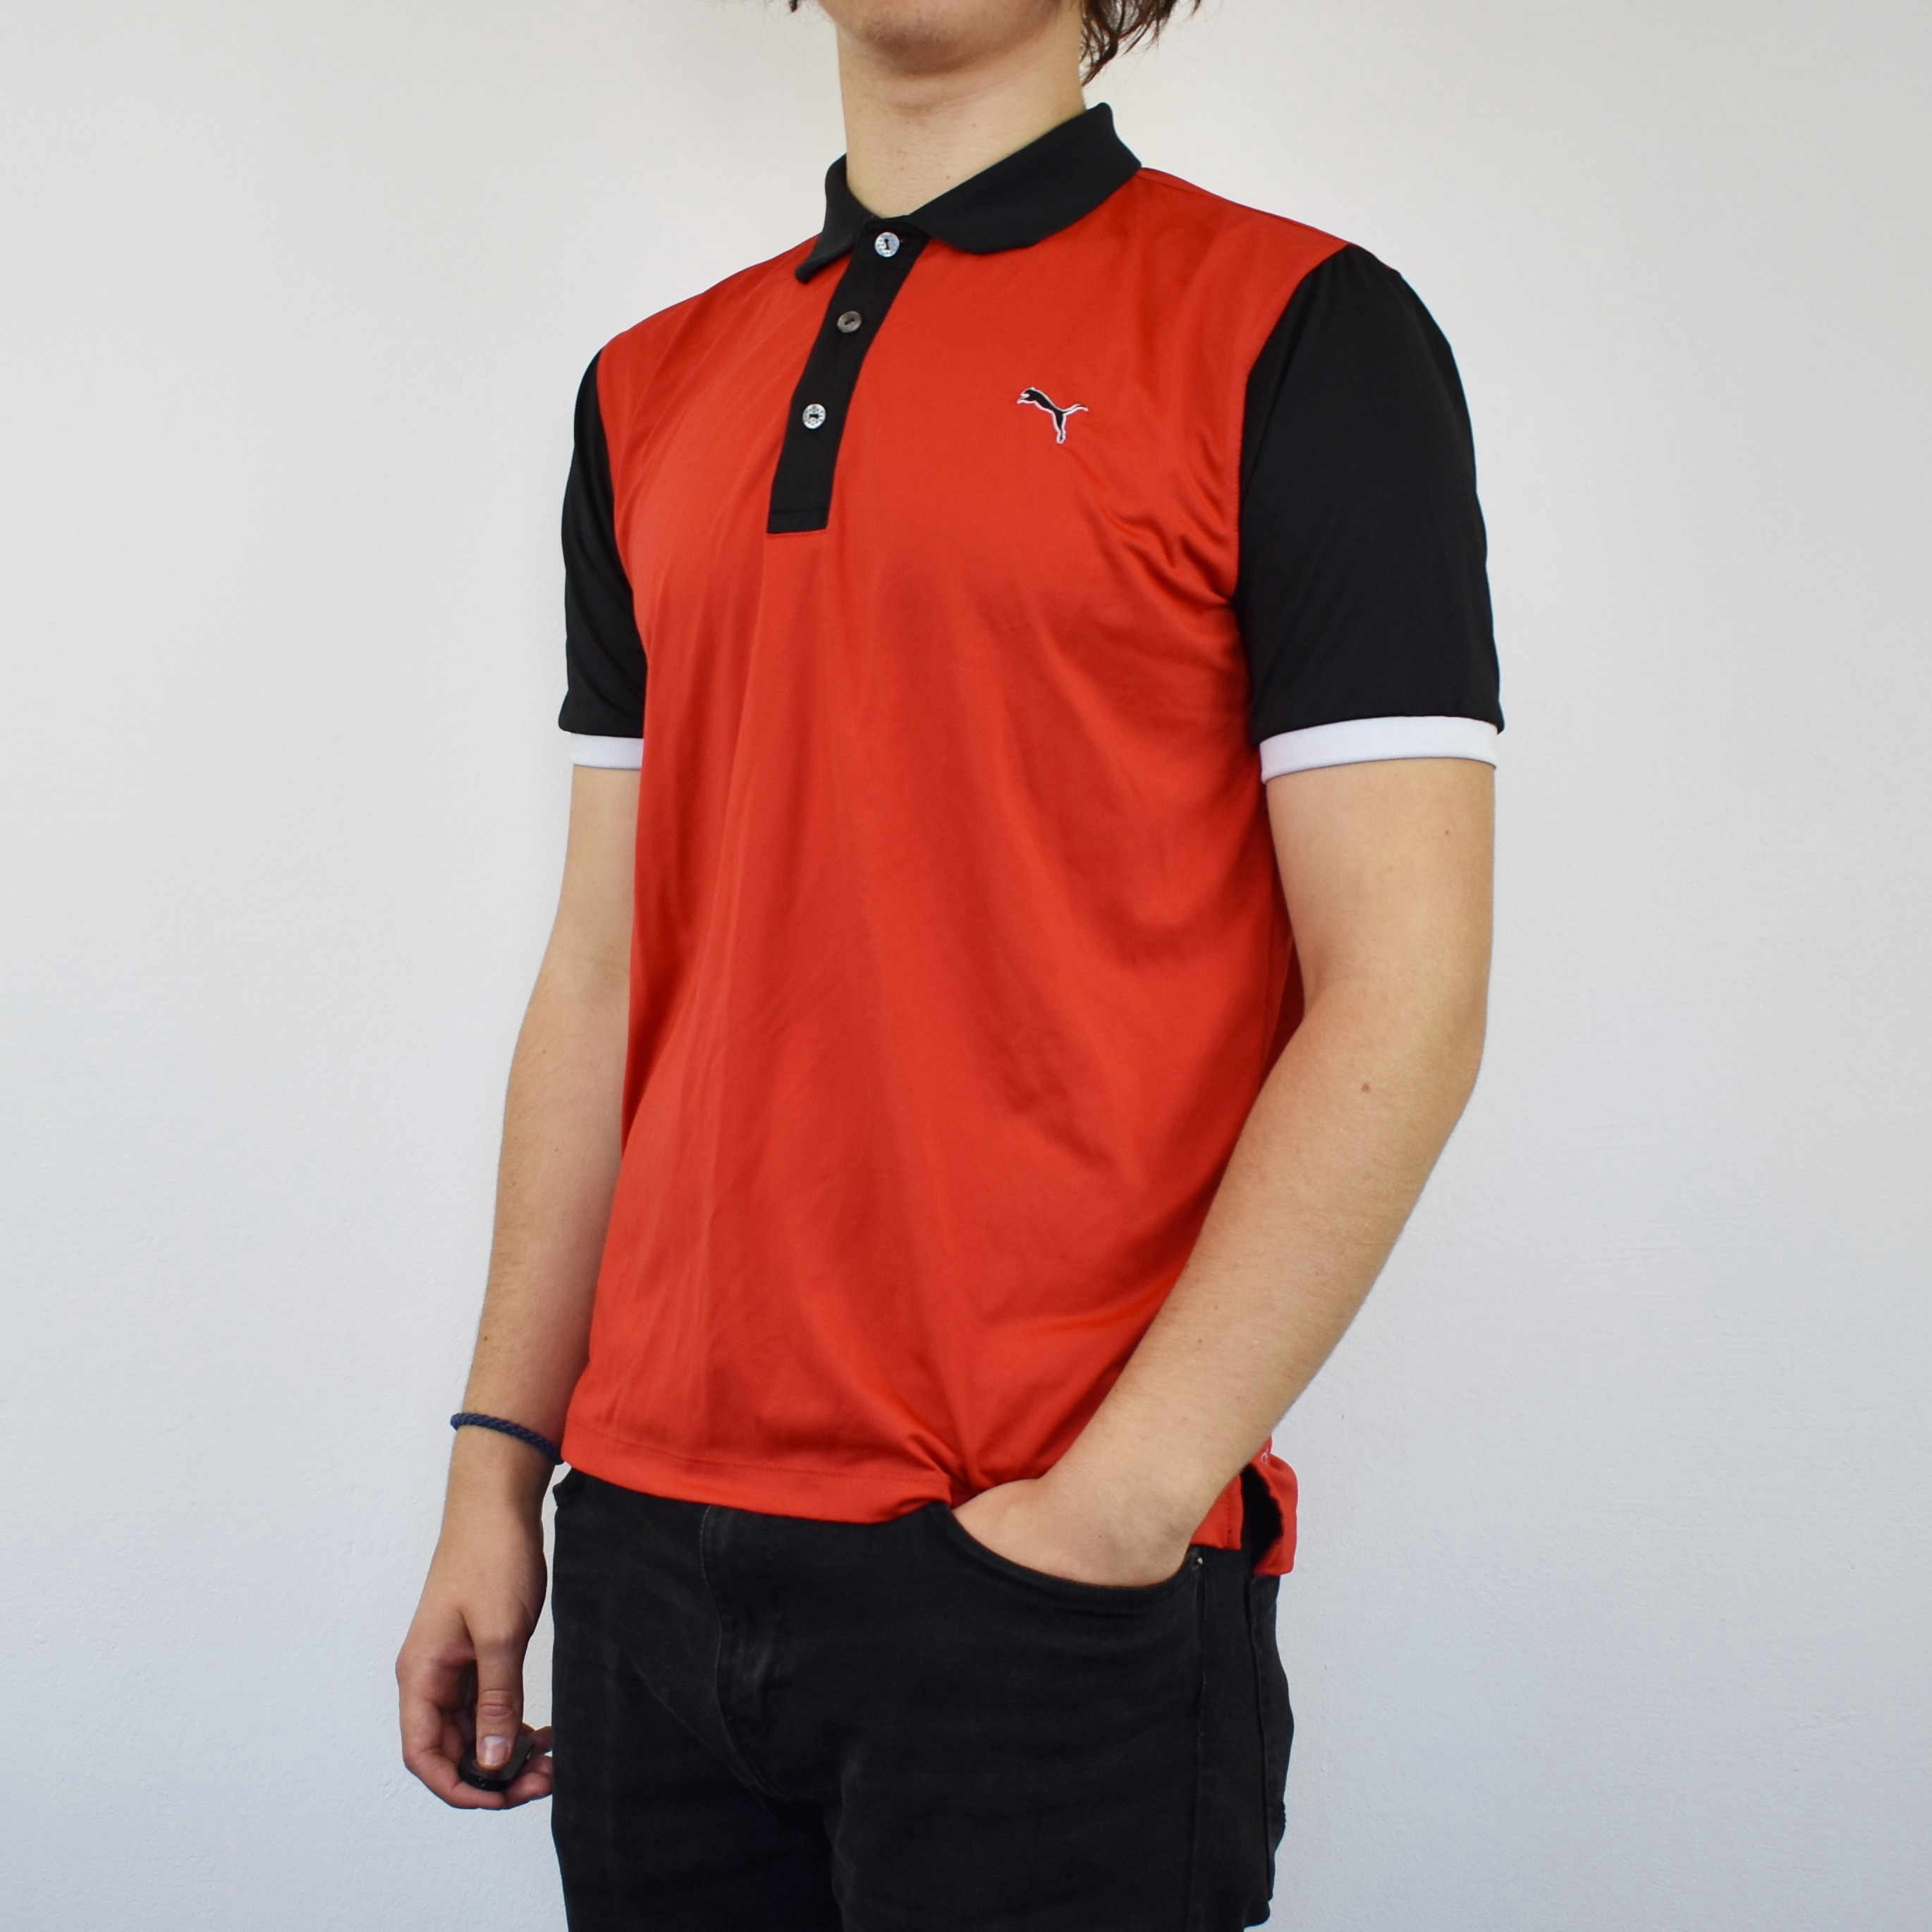 Unisex Vintage puma polo shirt top blouse tee in red and black.